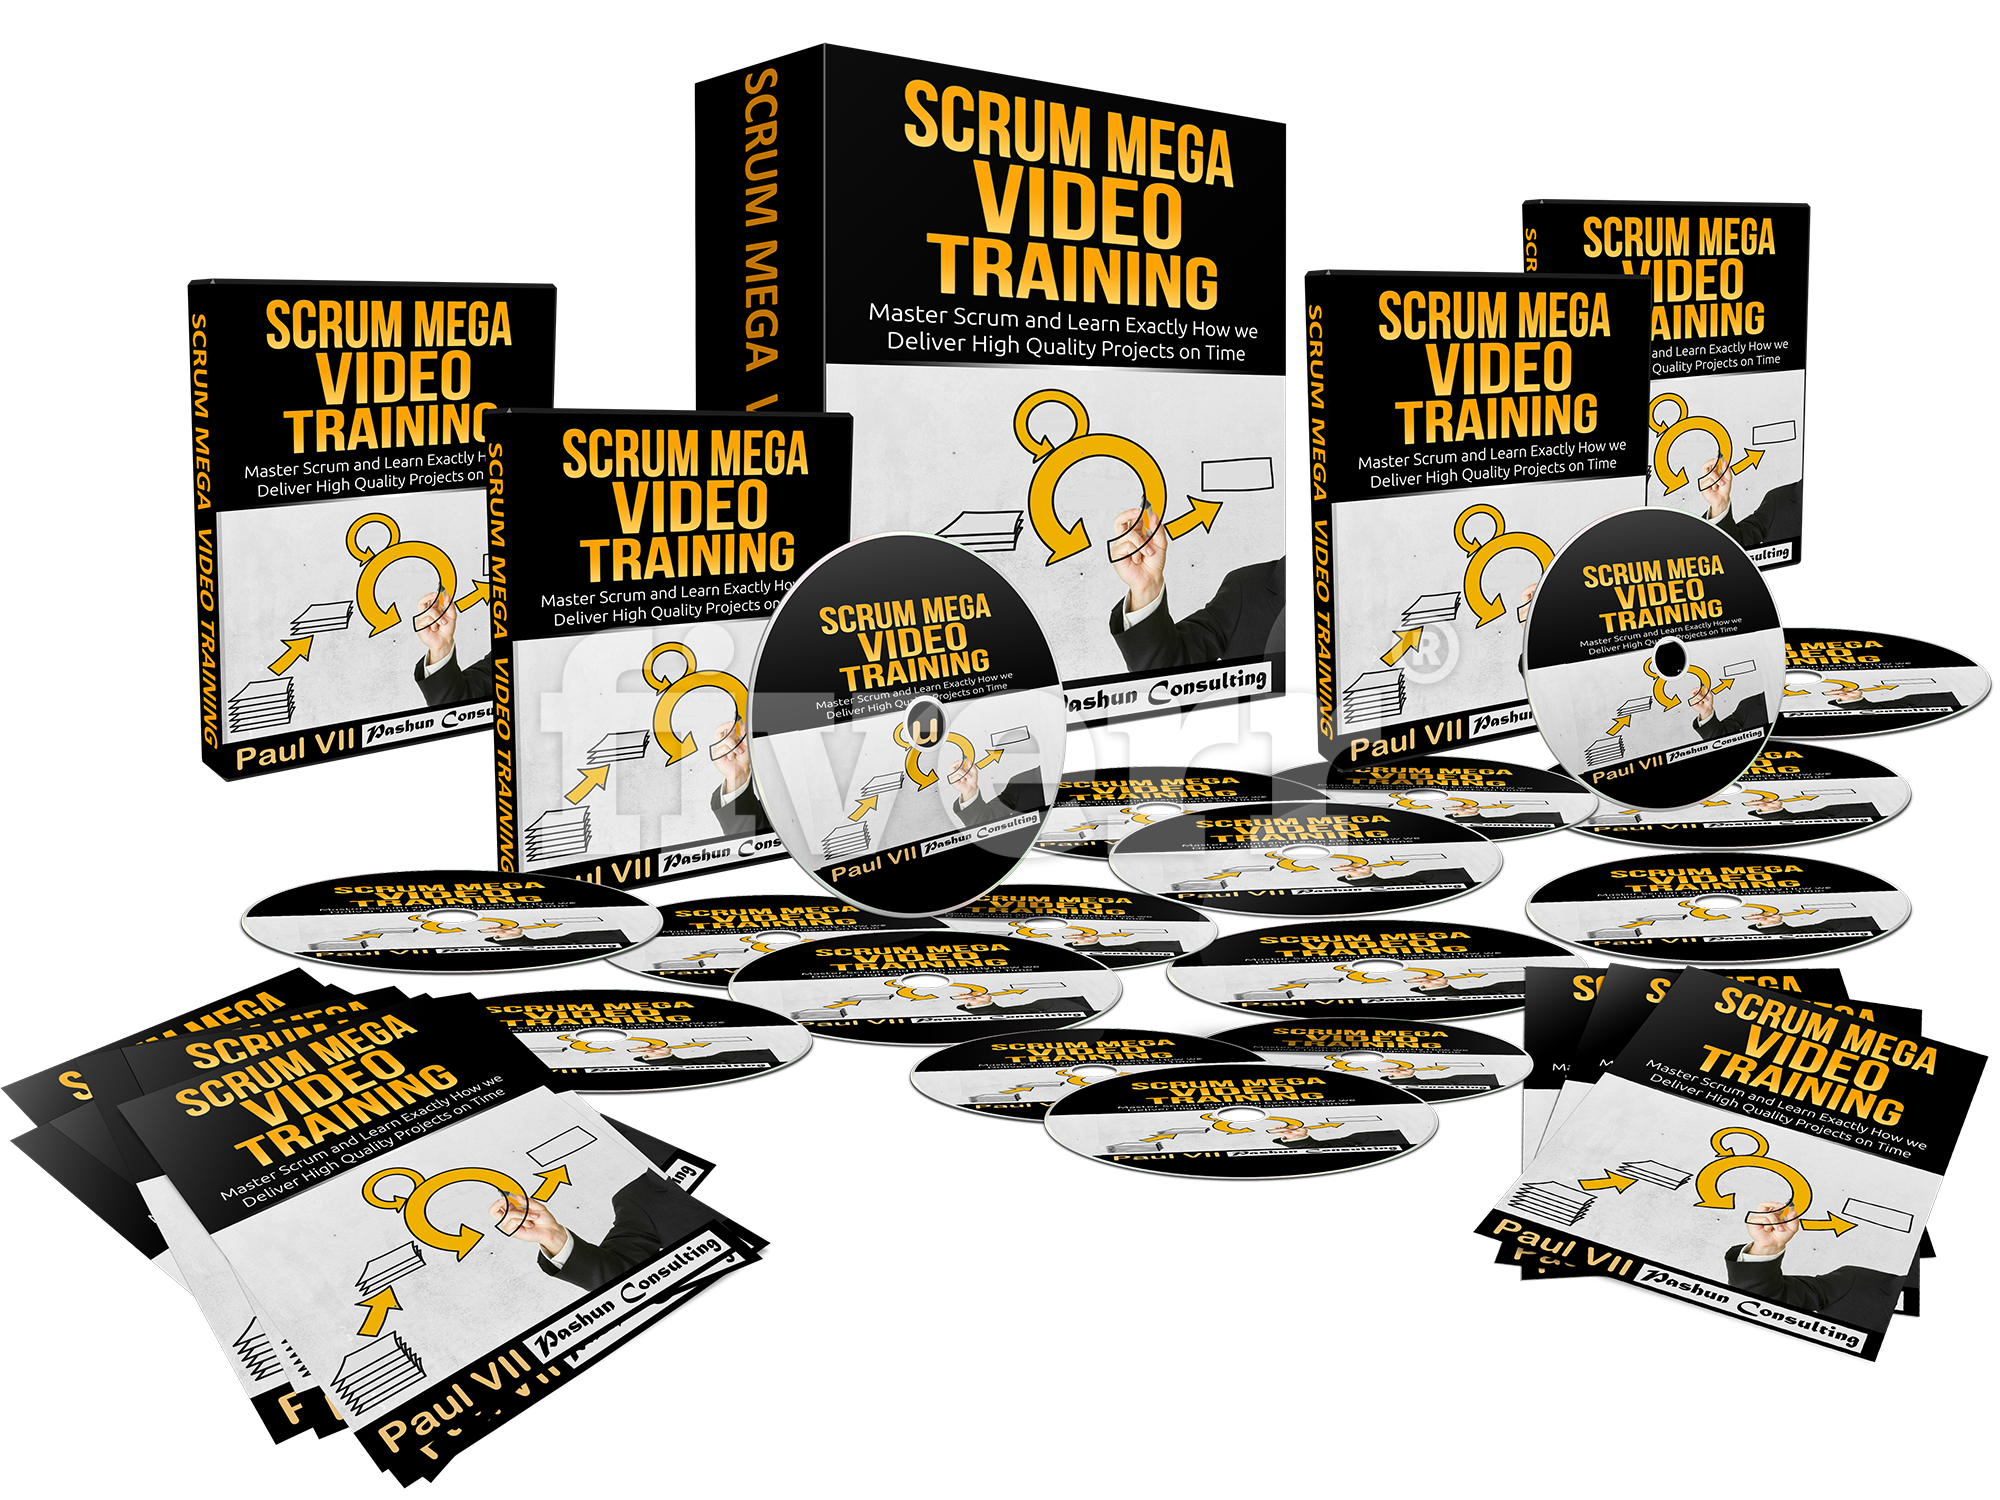 Scrum Mega Video The Complete Video Training Course For Mastering